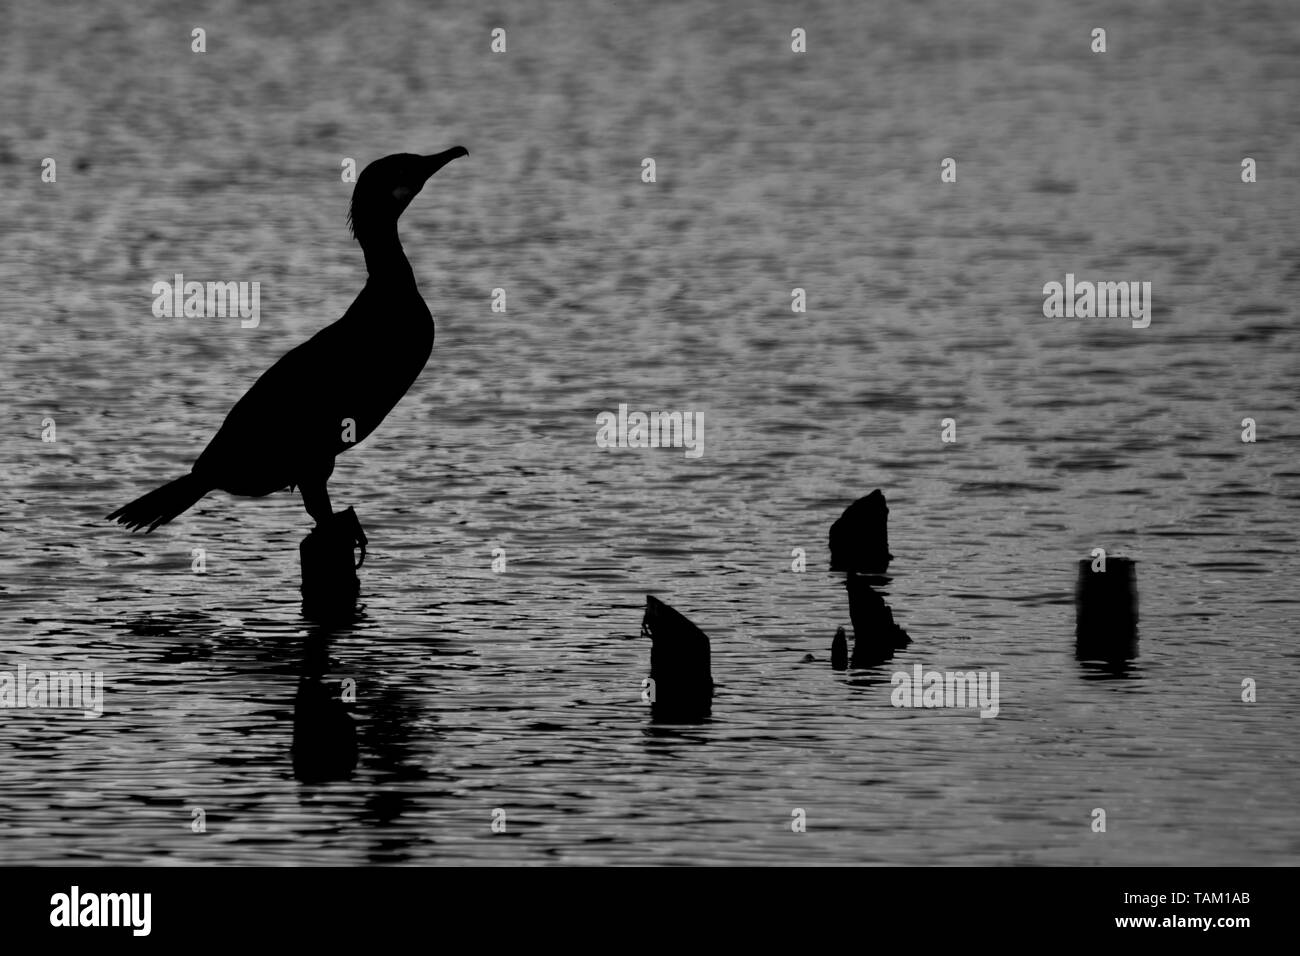 Silhouette of a cormorant basking in the late evening sun - Stock Image